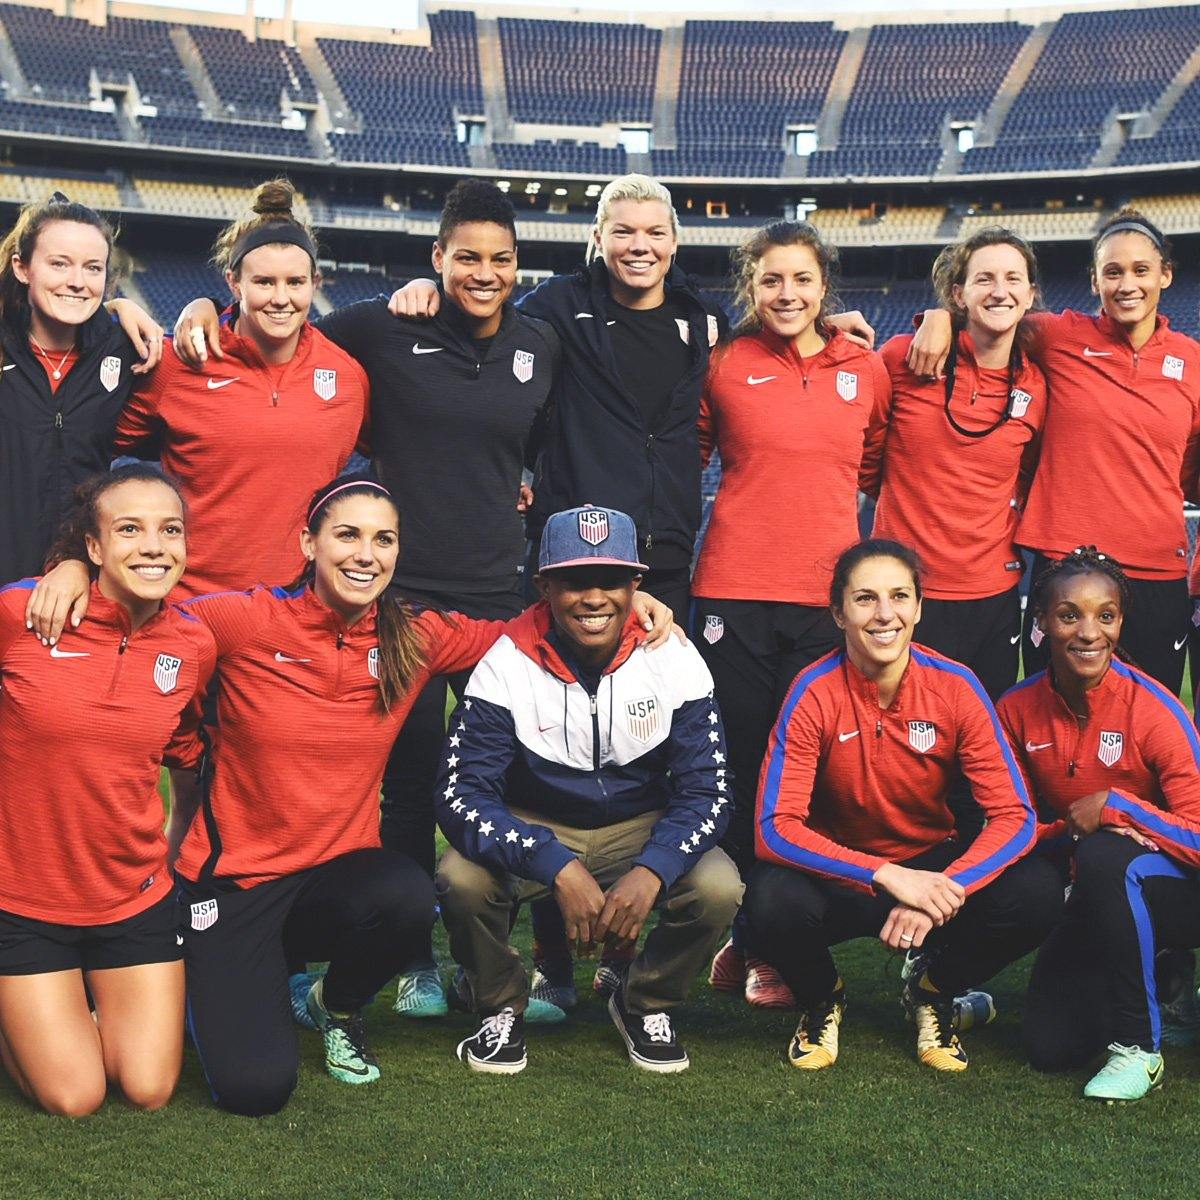 RT @ussoccer_wnt: New friend! Always an honor to host @MakeAWish 💫 at training. https://t.co/j2lfeHBvMh